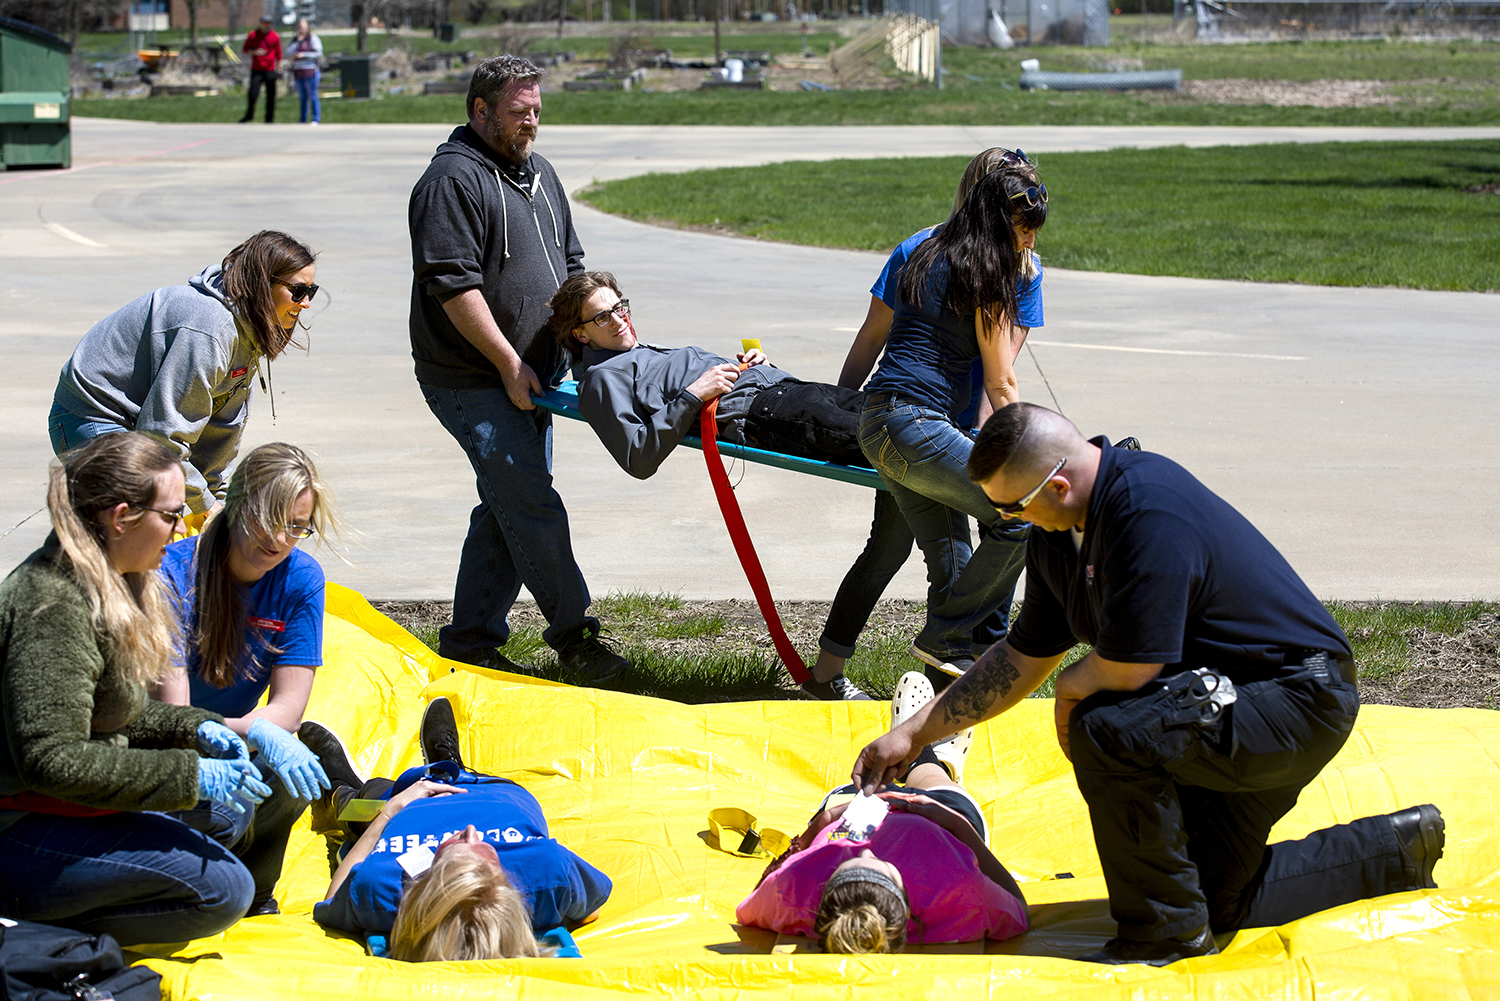 All hands were called to help with a simulated, mass-casualty disaster Saturday, April 20, 2019 at Lincoln Land Community College in Springfield, Ill. Approximately 70 students from the college's paramedic program, both basic and advanced, and nursing program worked together to triage volunteer victims who suffered burns, fractures and serious trauma. Nursing professor Pam Brown said the students learned the basics of Simple Triage Rapid Treatment, known as START, for first responders. [Rich Saal/The State Journal-Register]